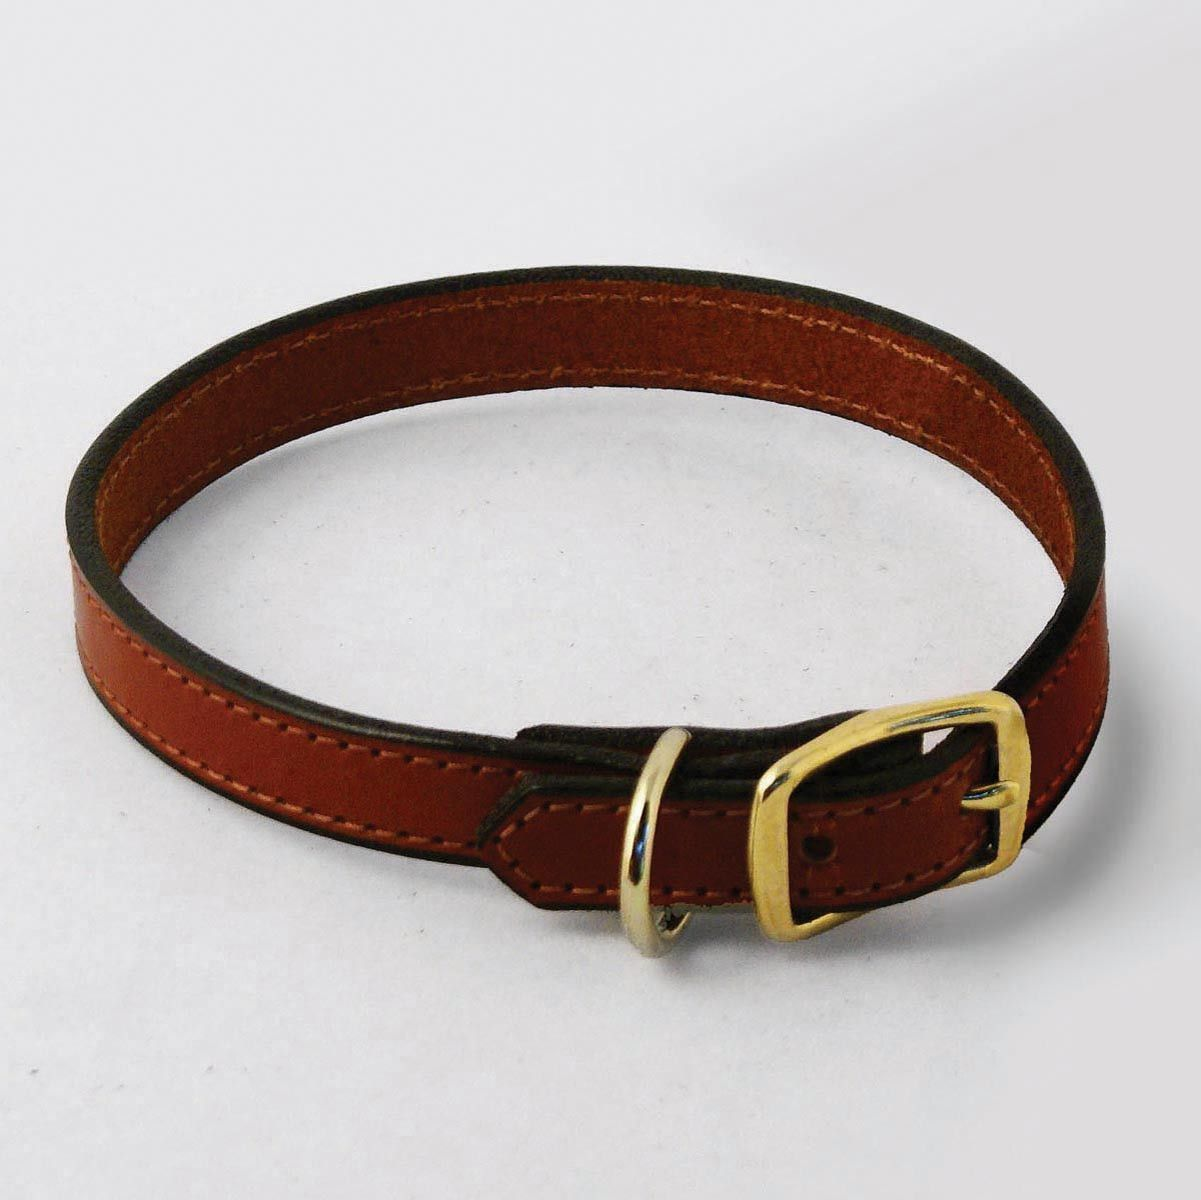 Bridle Leather Dog Collar Leather Dog Collars Leather Collar